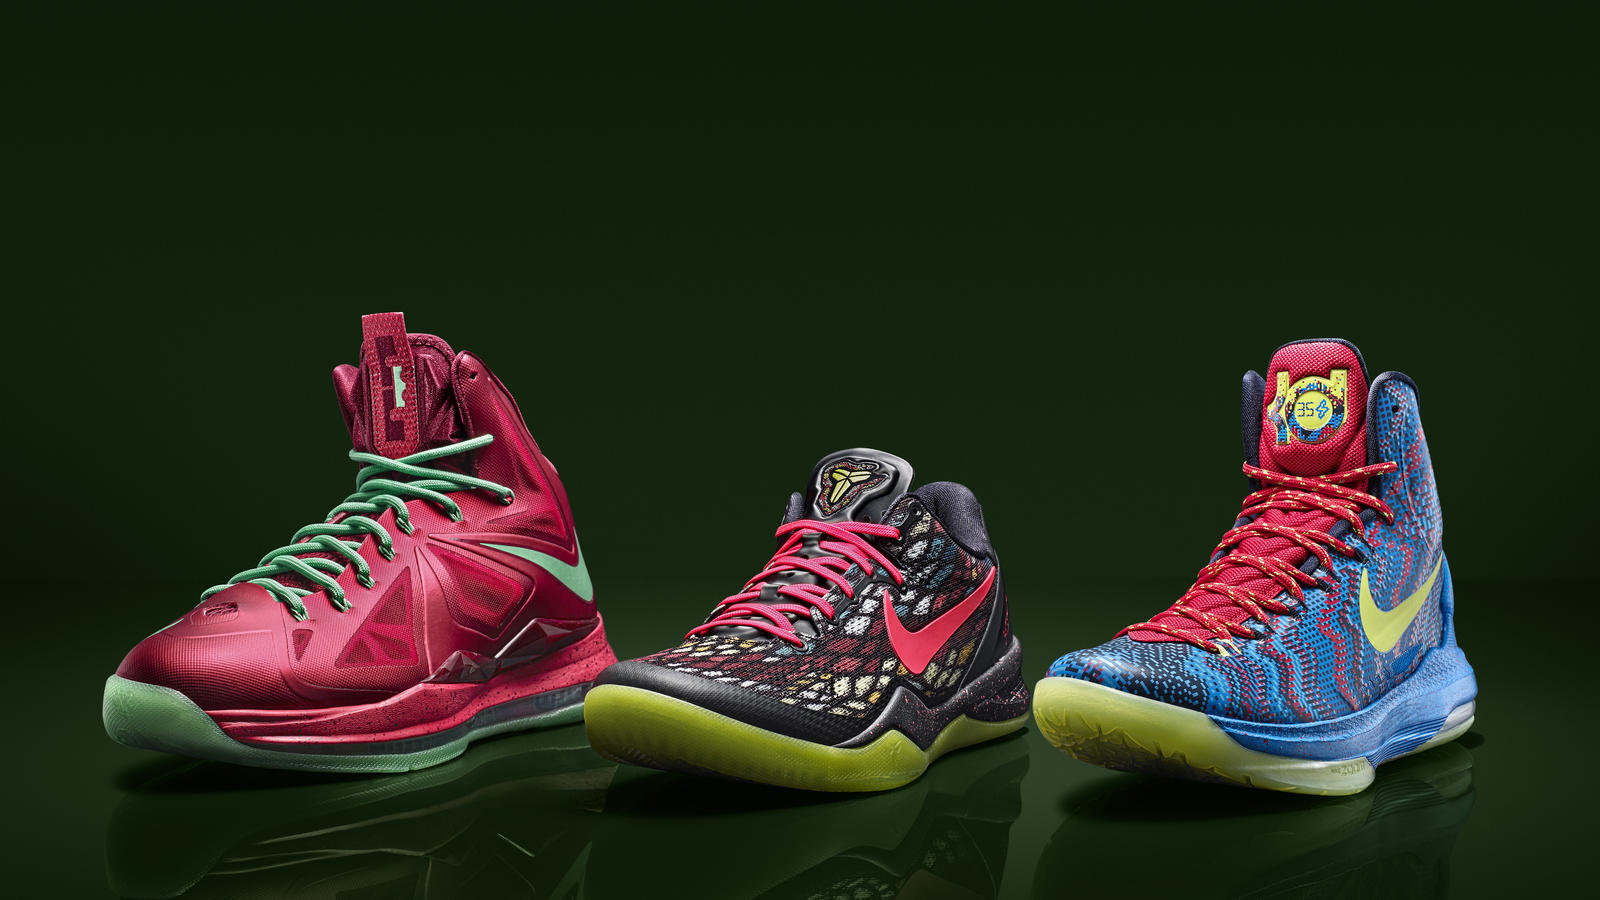 Tis the season for festive Nike Basketball signature footwear - Nike ...